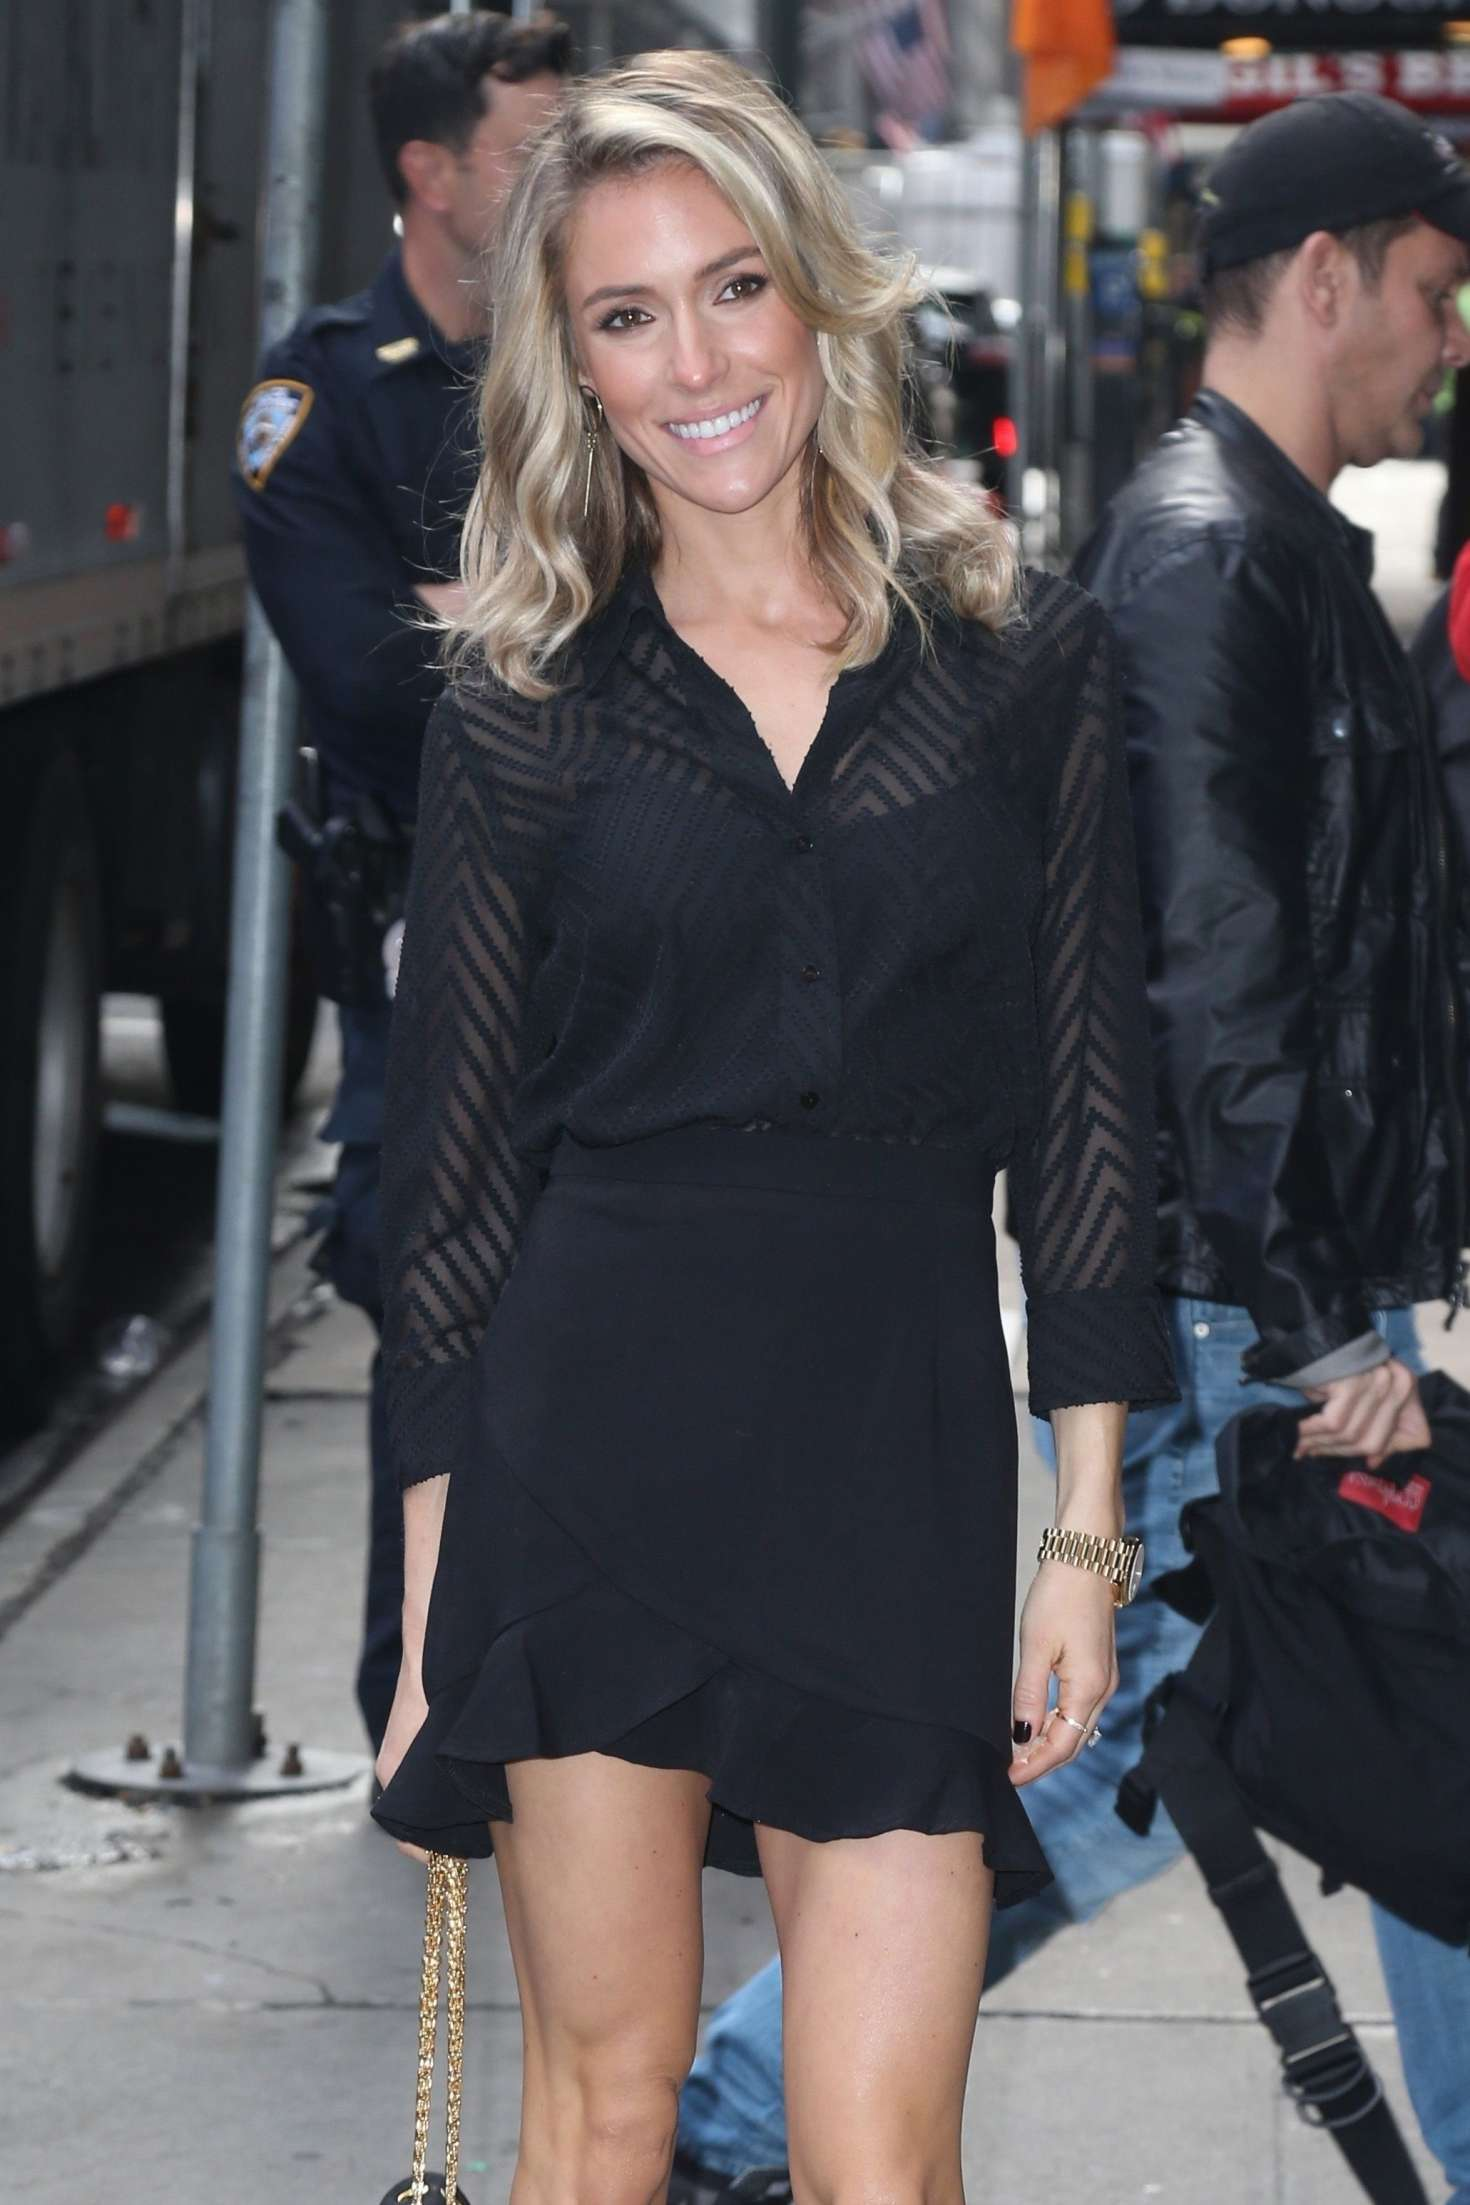 Kristin Cavallari 2019 : Kristin Cavallari: Heads to Good Morning America -07